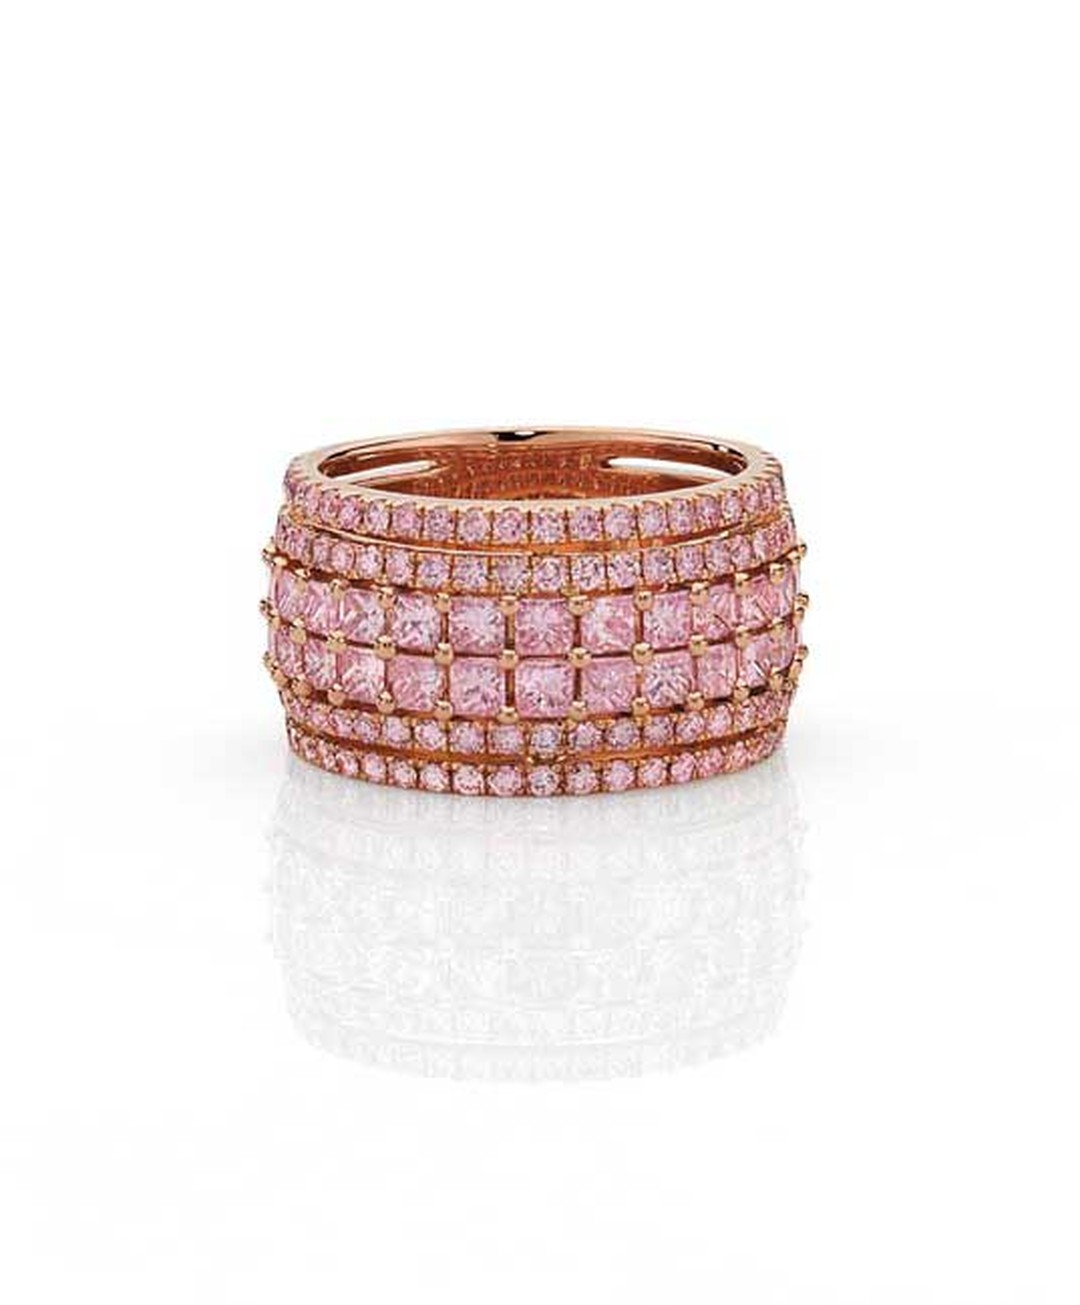 Cerrone pink diamond ring in rose gold, set with princess cut and round brilliant Argyle pink diamonds, available at www.cerrone.com.au.